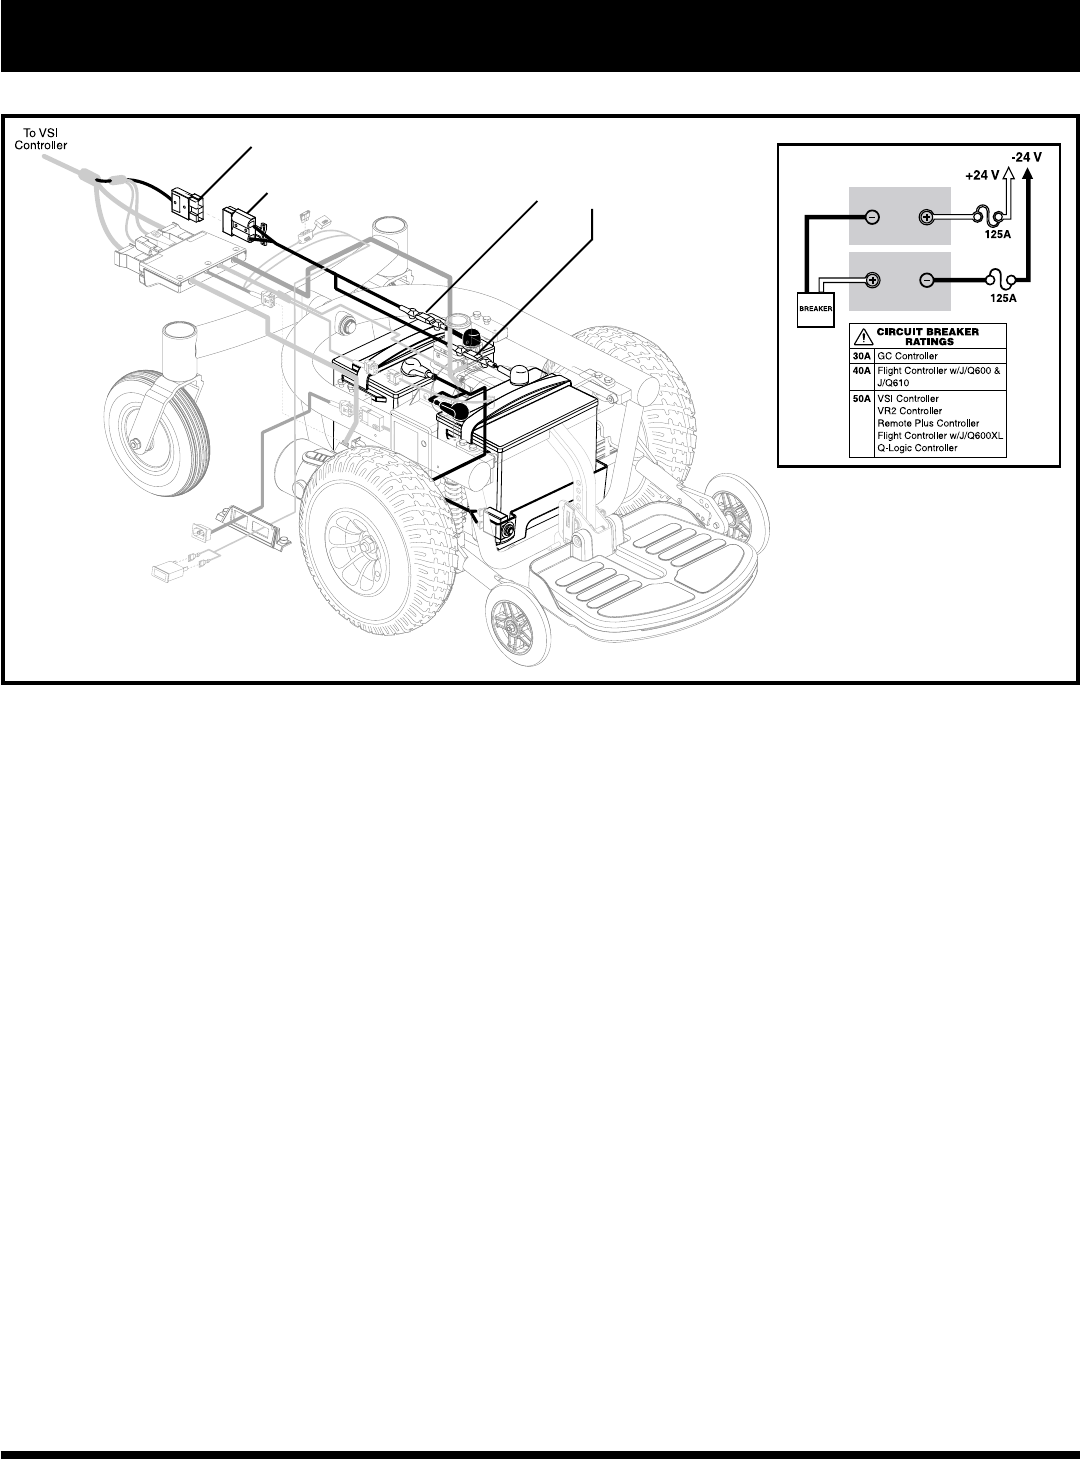 55cd0a64 9f56 4b5b bb6f 66cc883674a7 bg2c page 44 of pride mobility mobility aid 1103 ultra user guide jazzy power chair wiring diagram at eliteediting.co